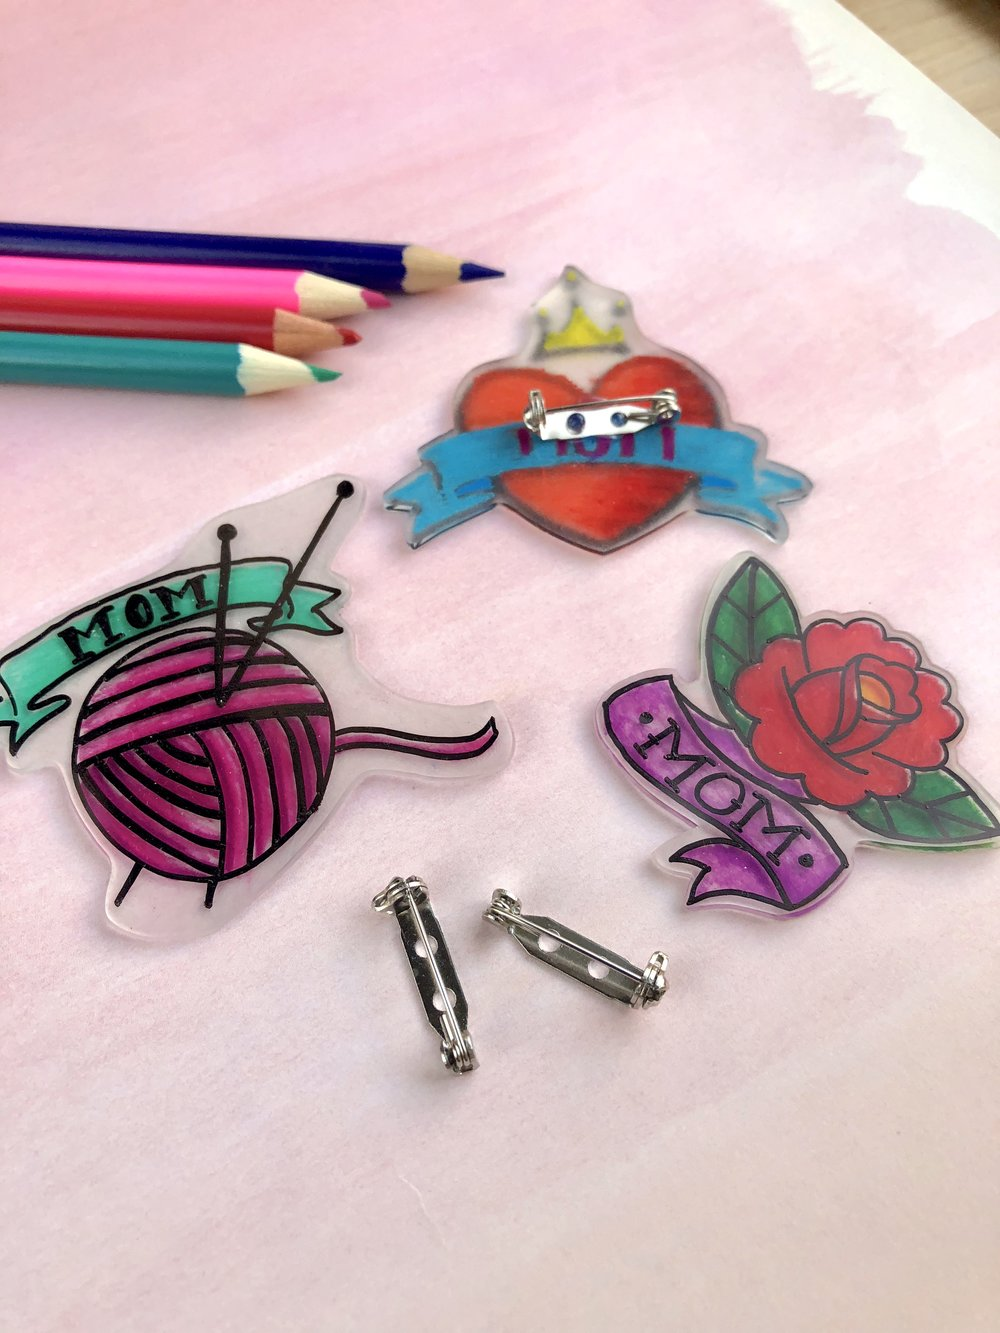 Mother's Day Shrinky Dink Mom Tattoo Pins #mothersdaydiy #mothersdaygifts